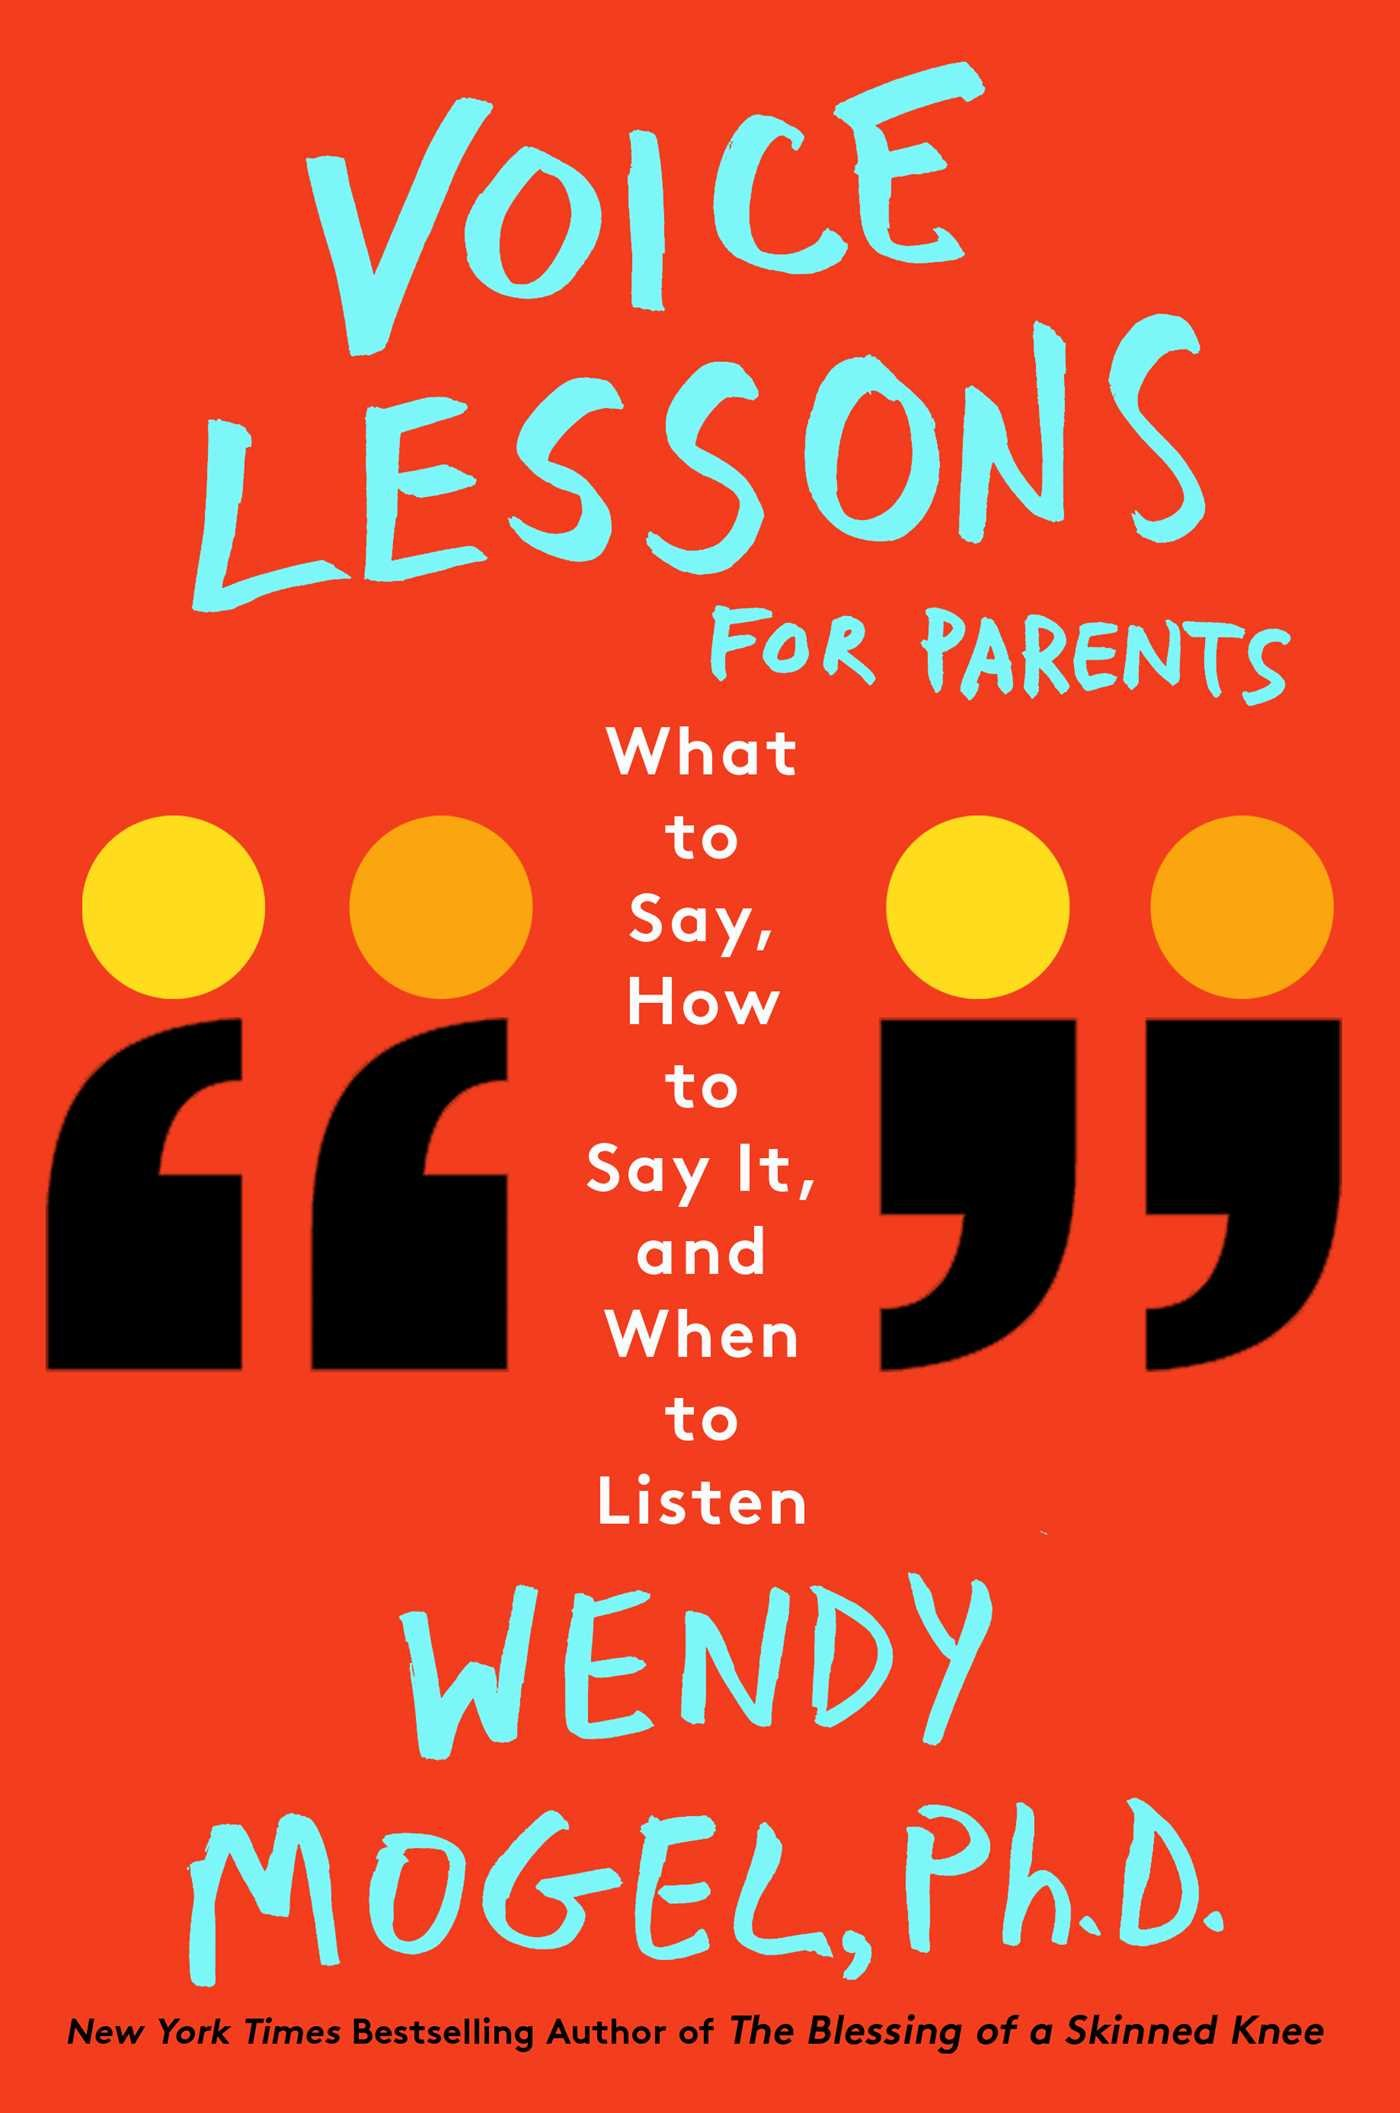 Amazon.com: Voice Lessons for Parents: What to Say, How to Say it, and When  to Listen (9781501142390): Wendy Mogel Ph.D.: Books